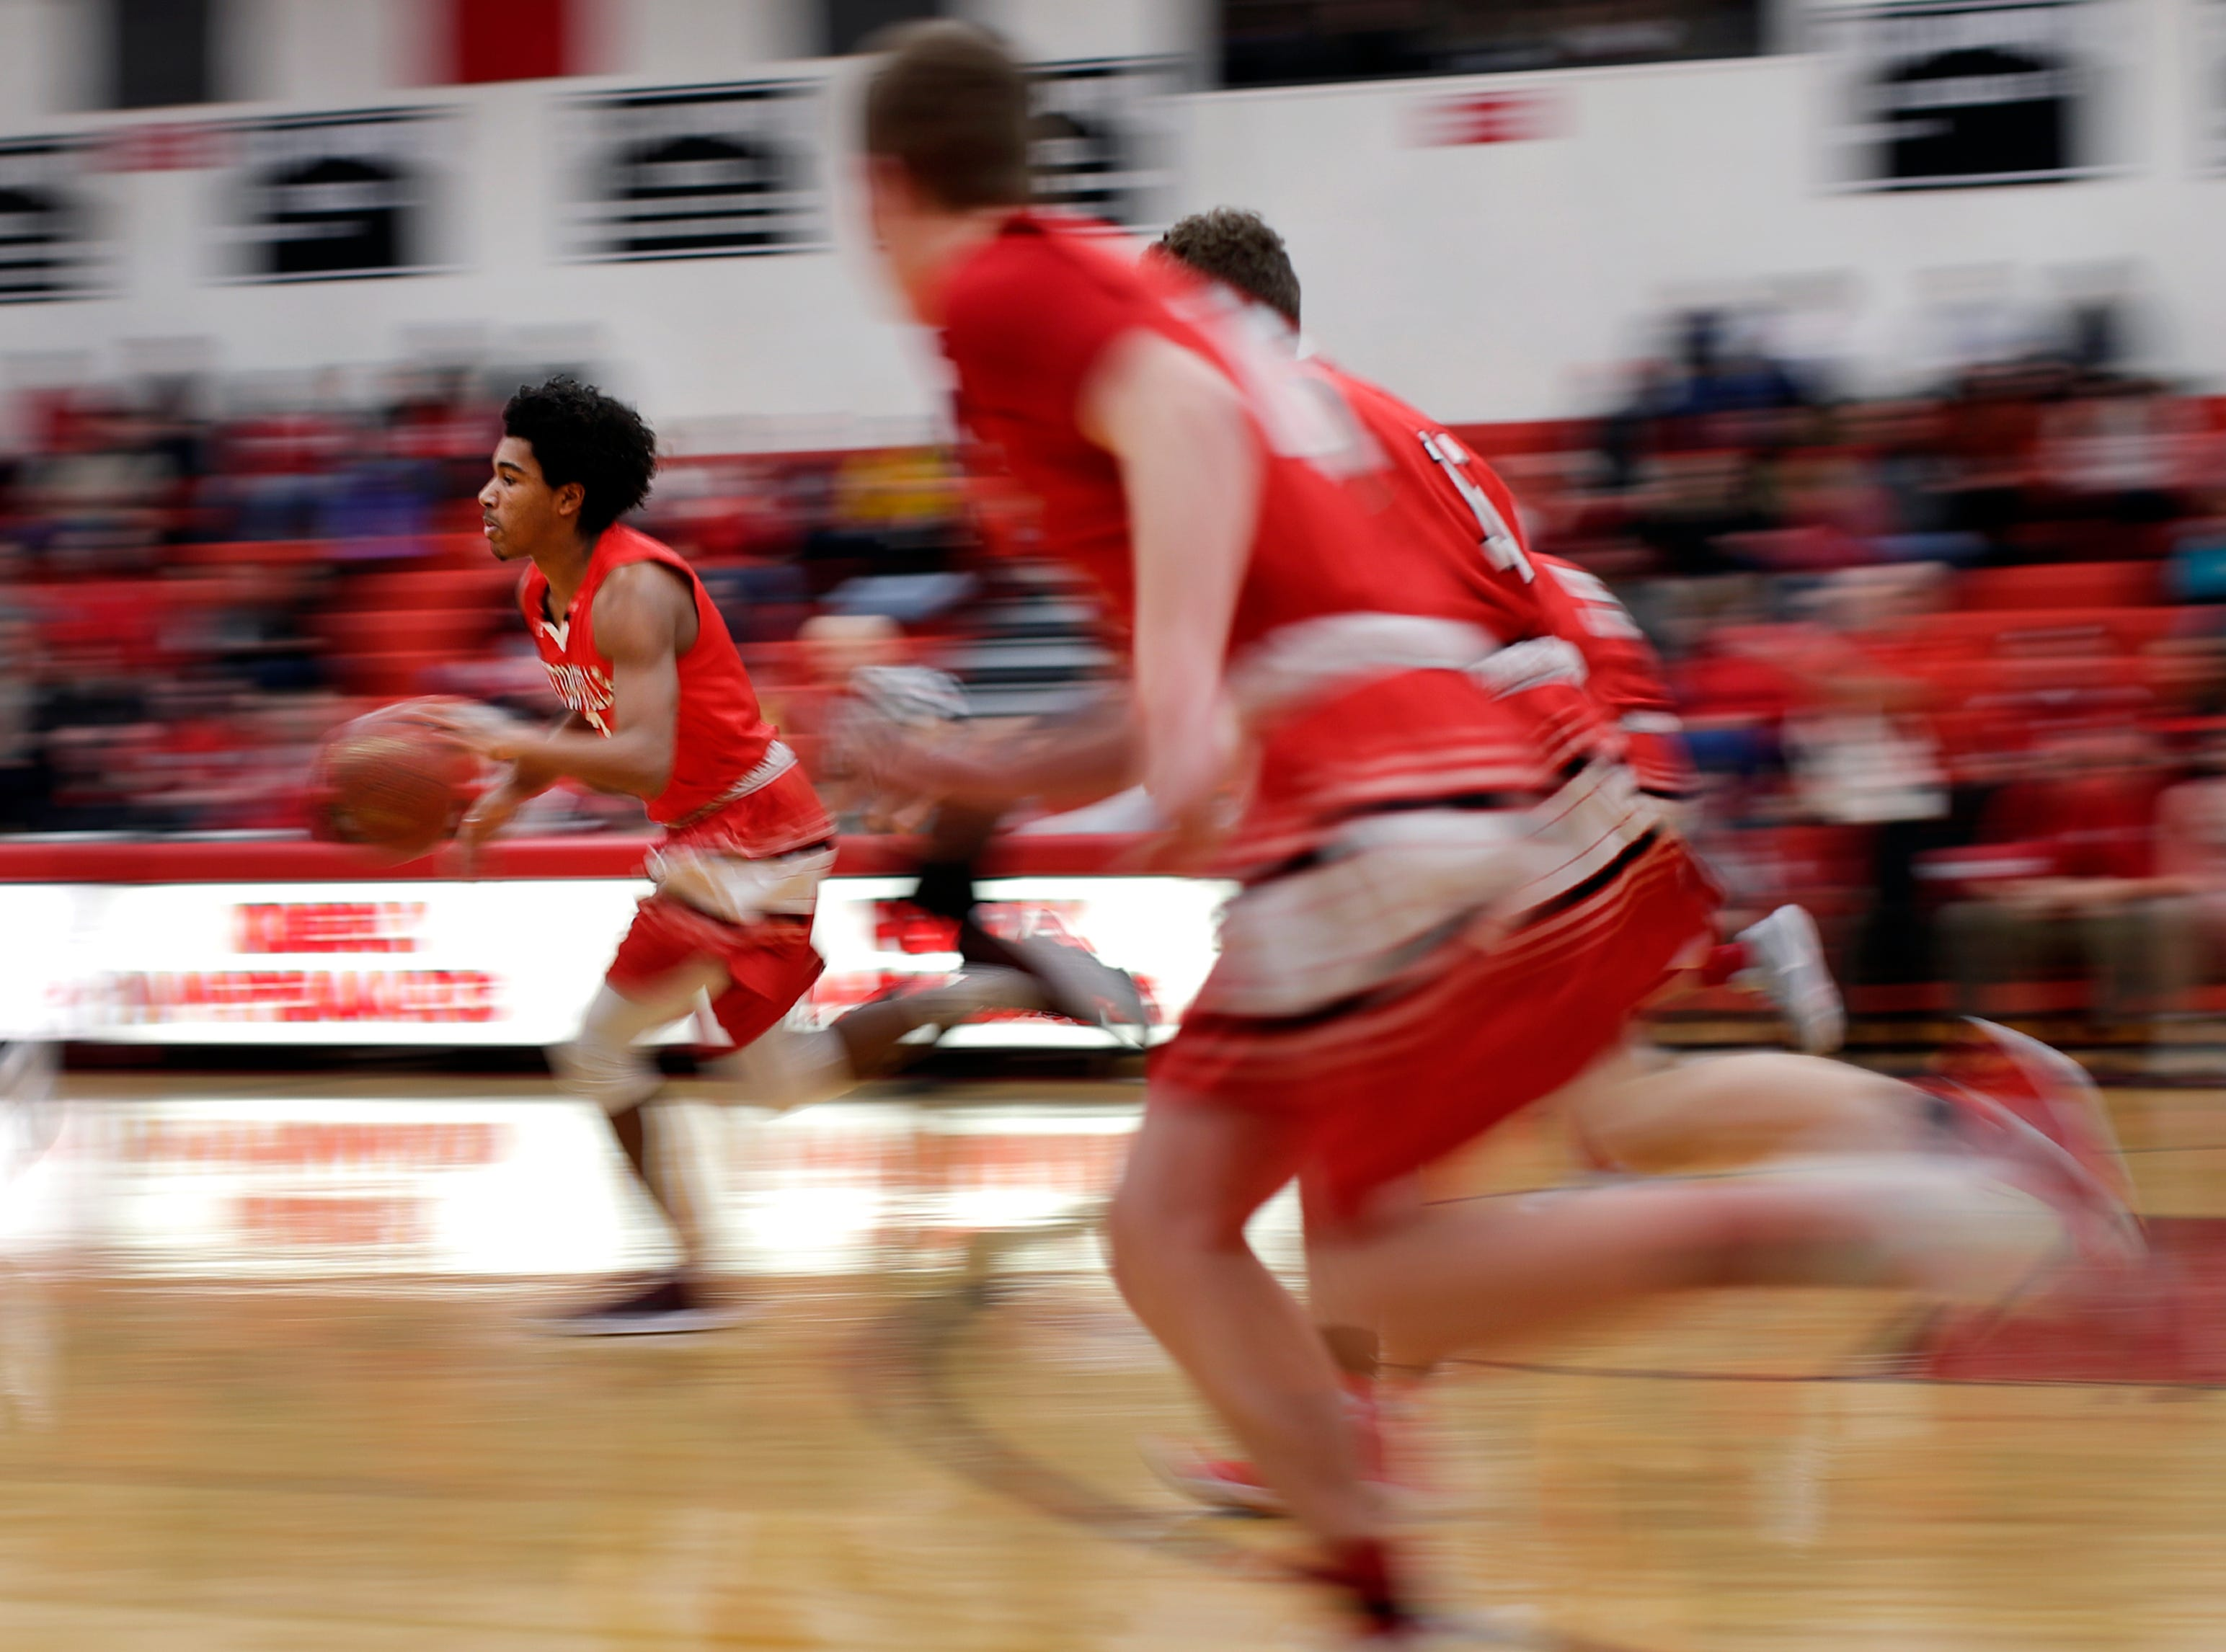 Hortonville High School's Jayqon Owens makes a run down the court during their game against Kimberly High School Thursday, Feb. 08, 2018, in Kimberly, Wis.